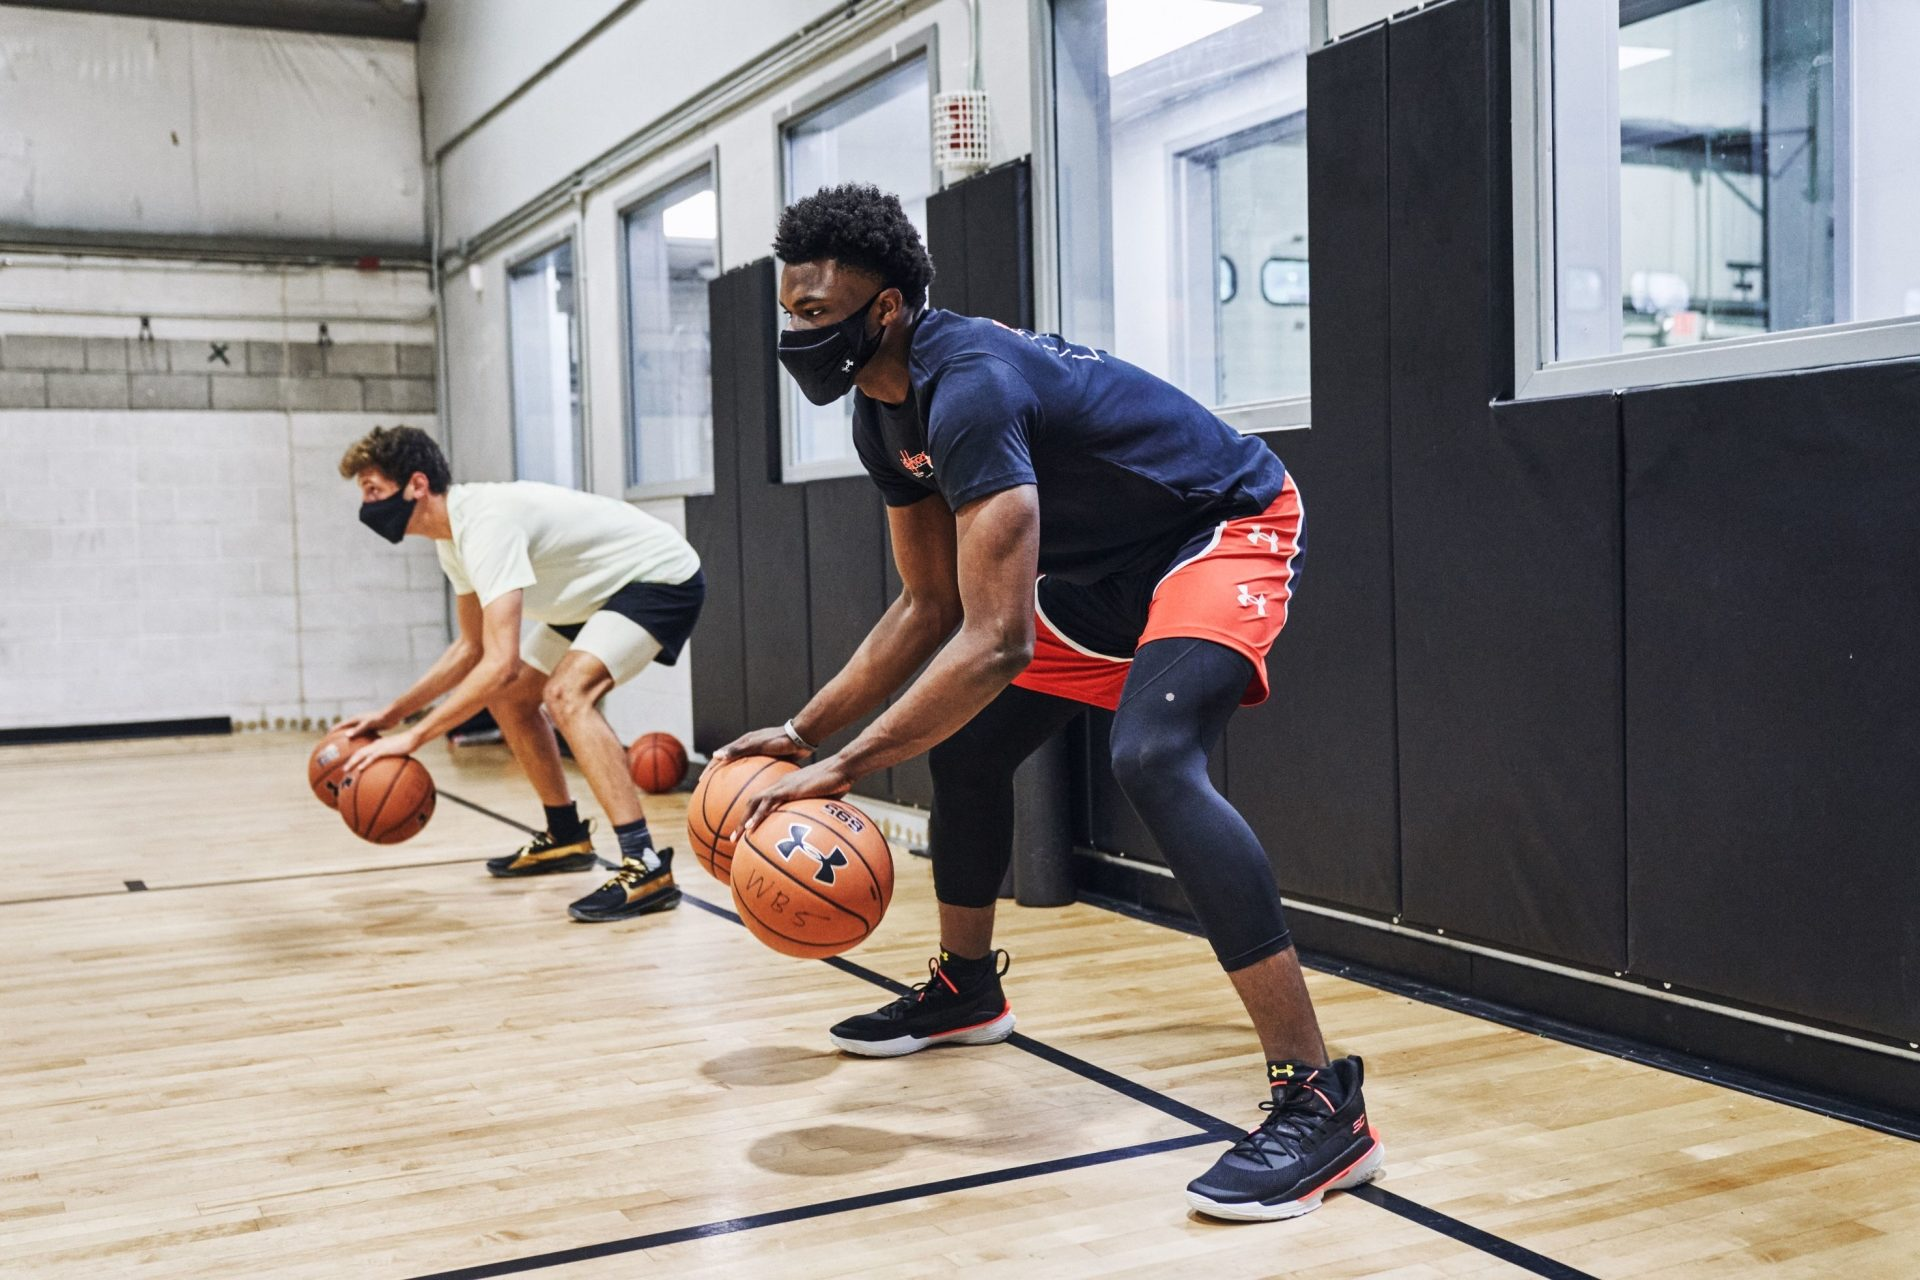 The Ua Sports Mask By Under Armour Keeps You Safe During Exercise